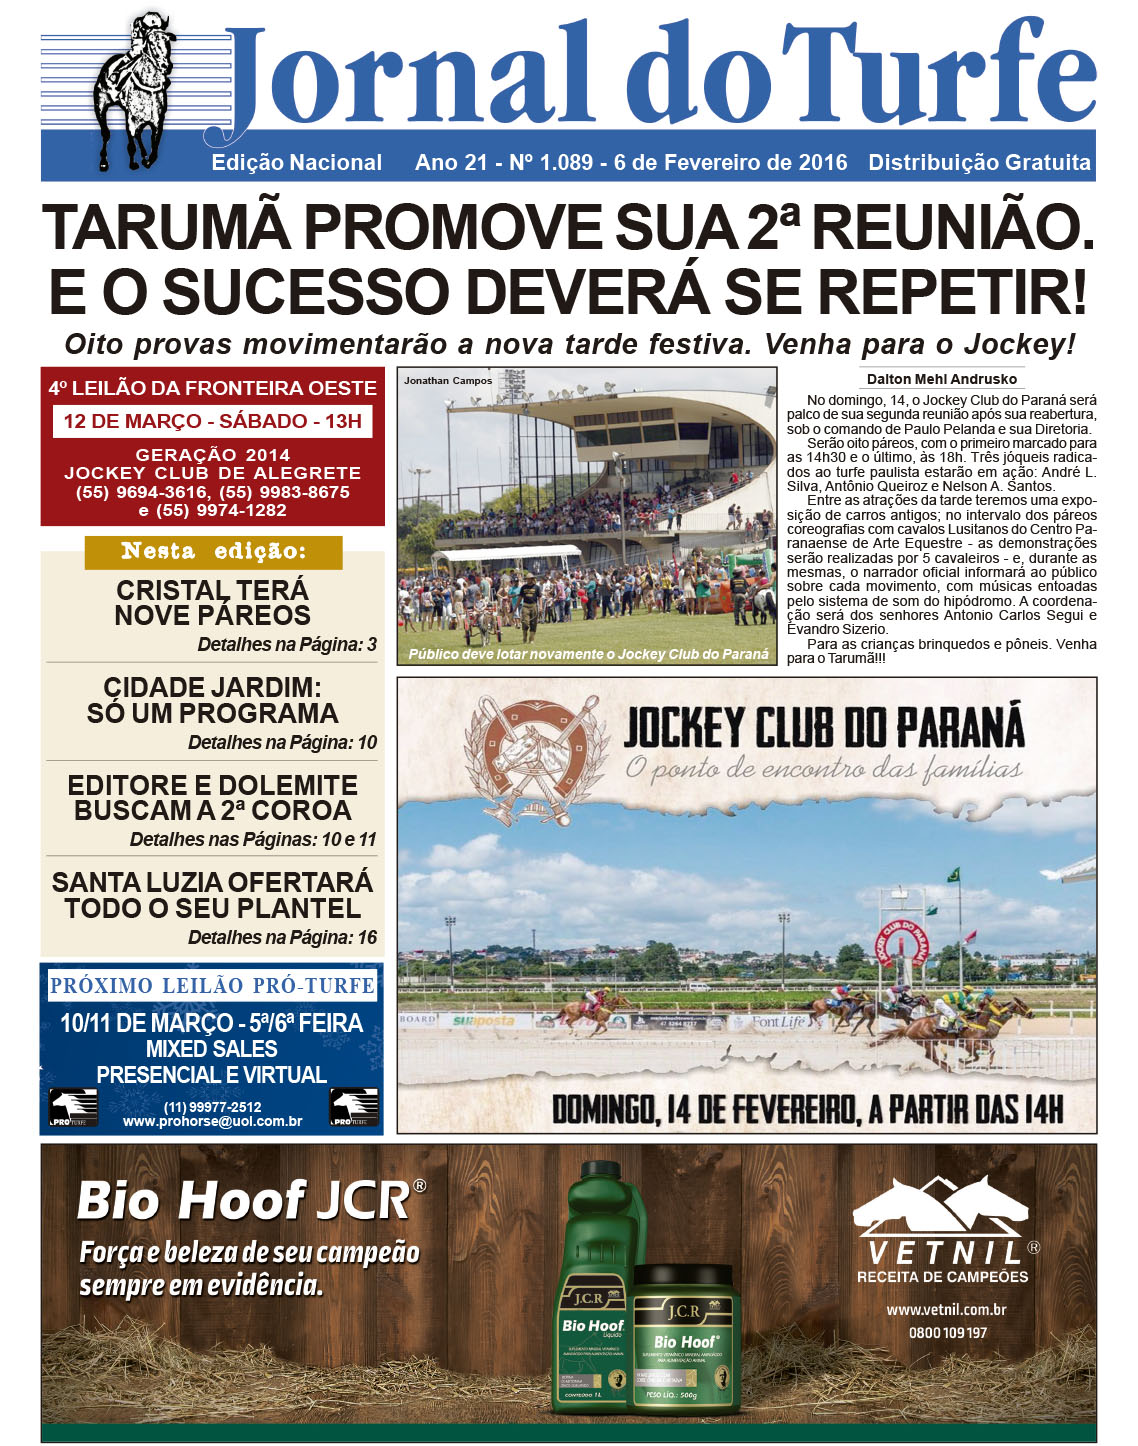 Jockey Club do PR é destaque no Jornal do Turfe